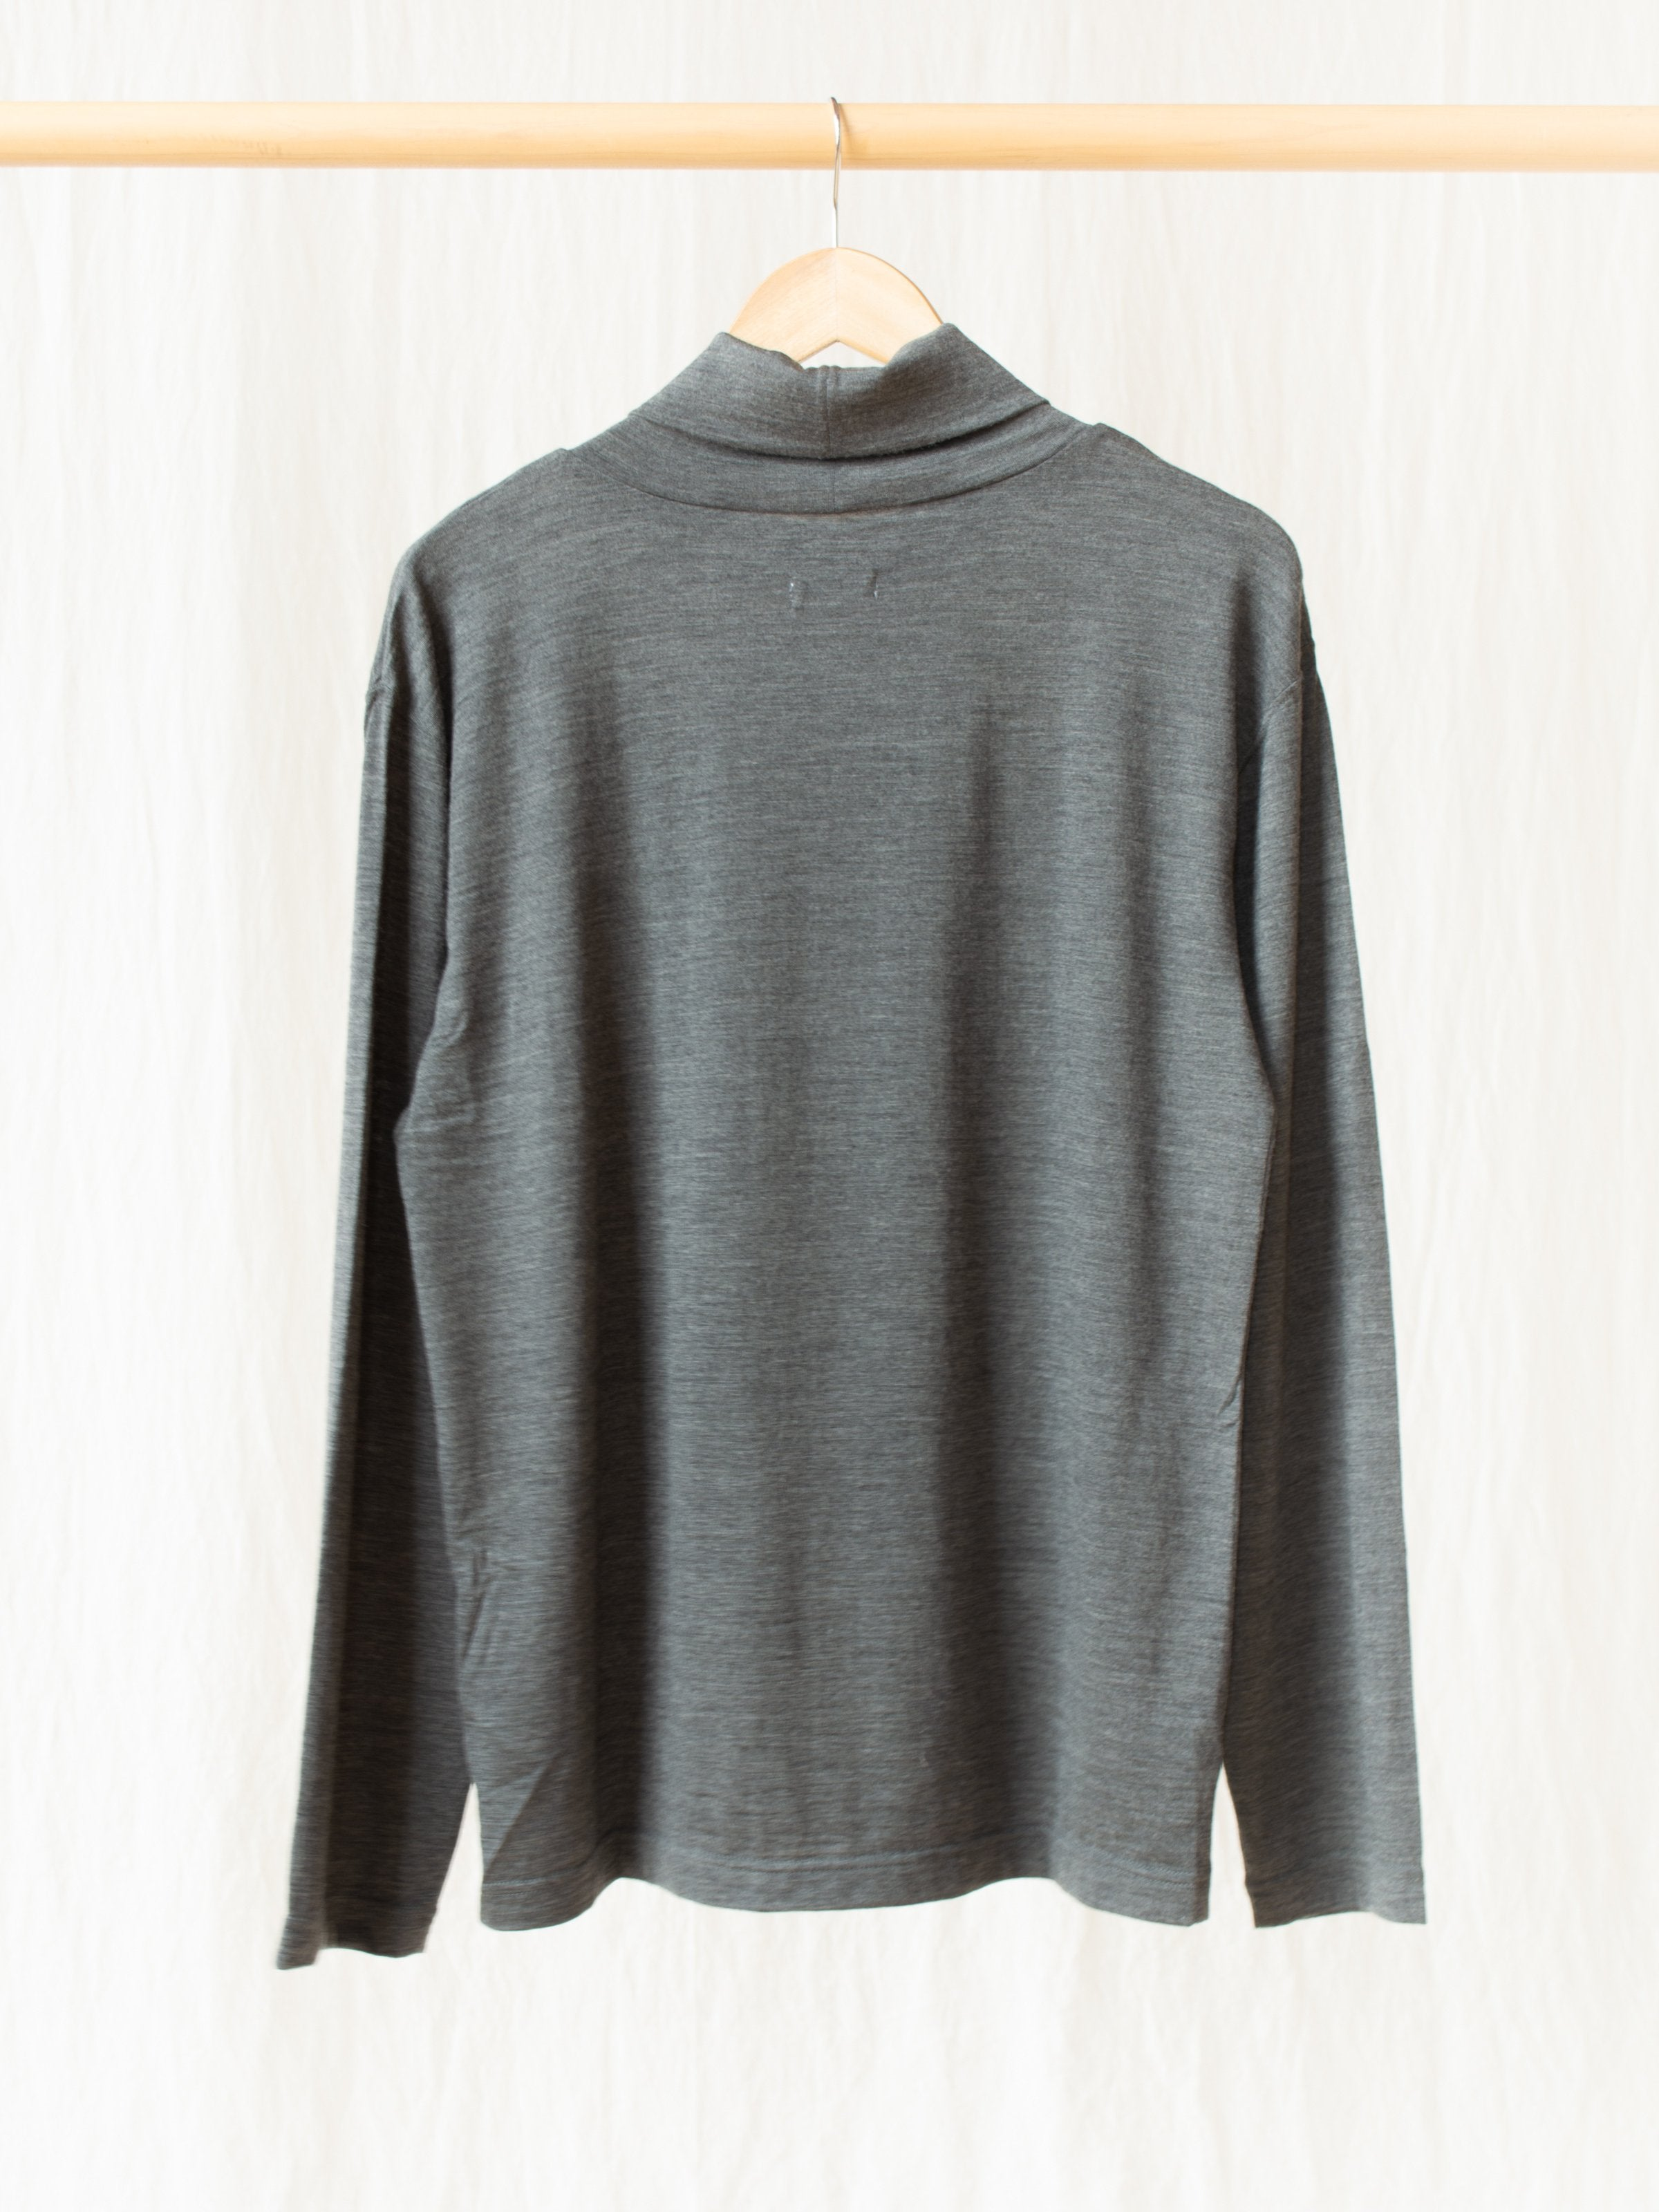 Namu Shop - ts(s) Washable High Gauge Wool Turtleneck - Gray